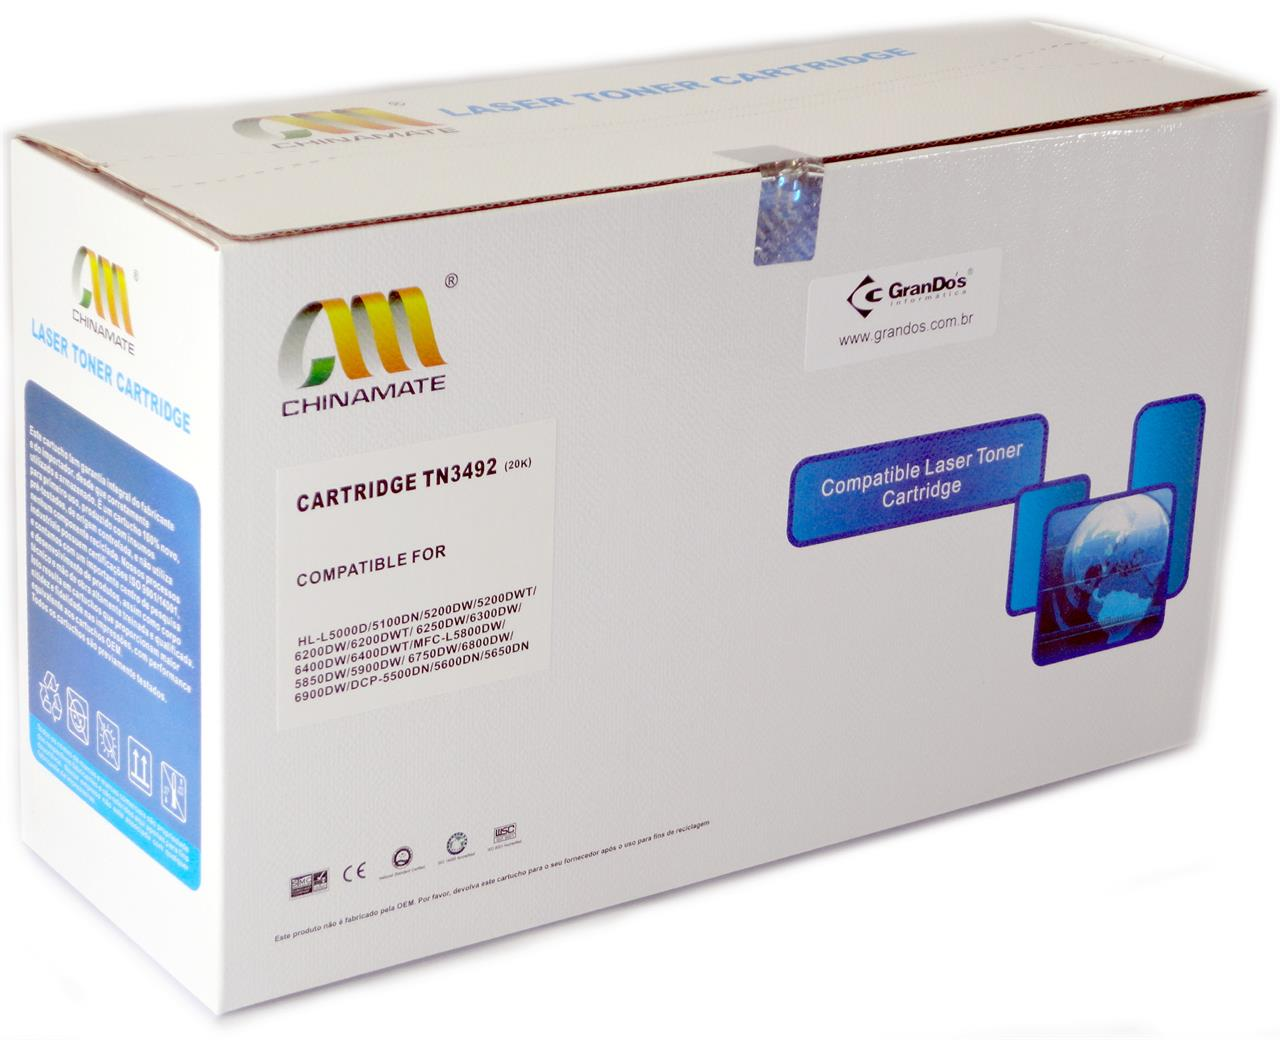 Toner Compatível Brother TN3492 Chinamate